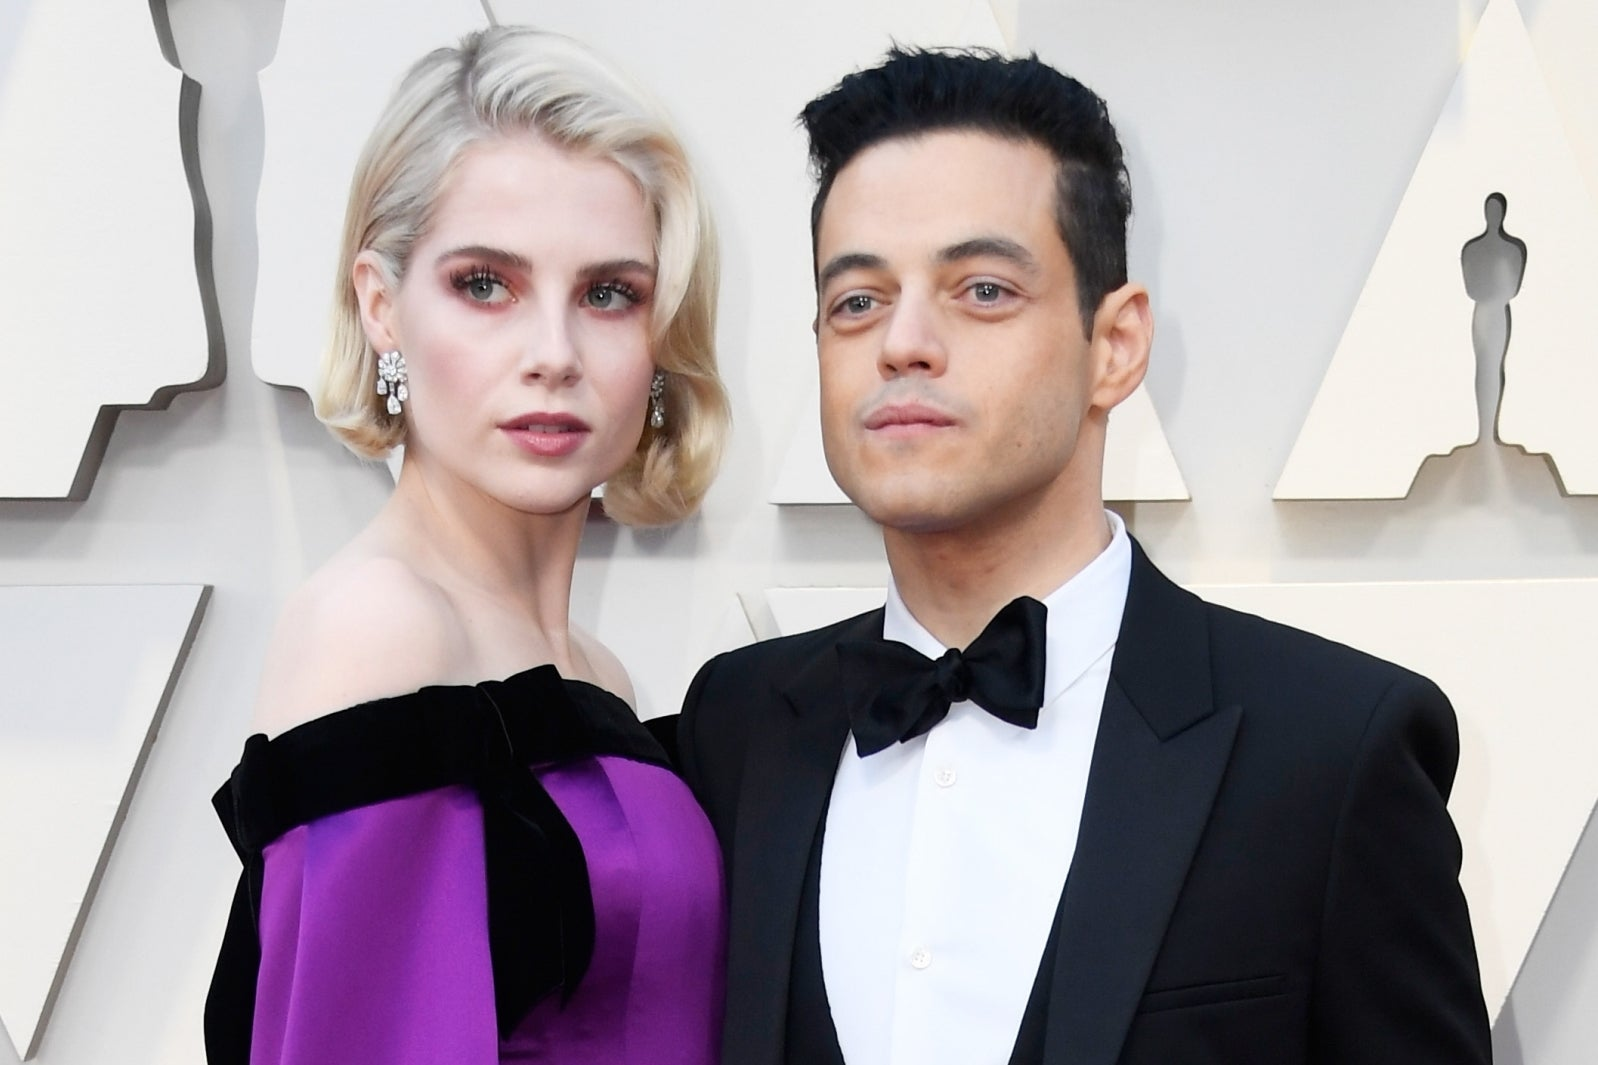 Rami Malek says he is 'so lucky' to be in a relationship with girlfriend Lucy Boynton